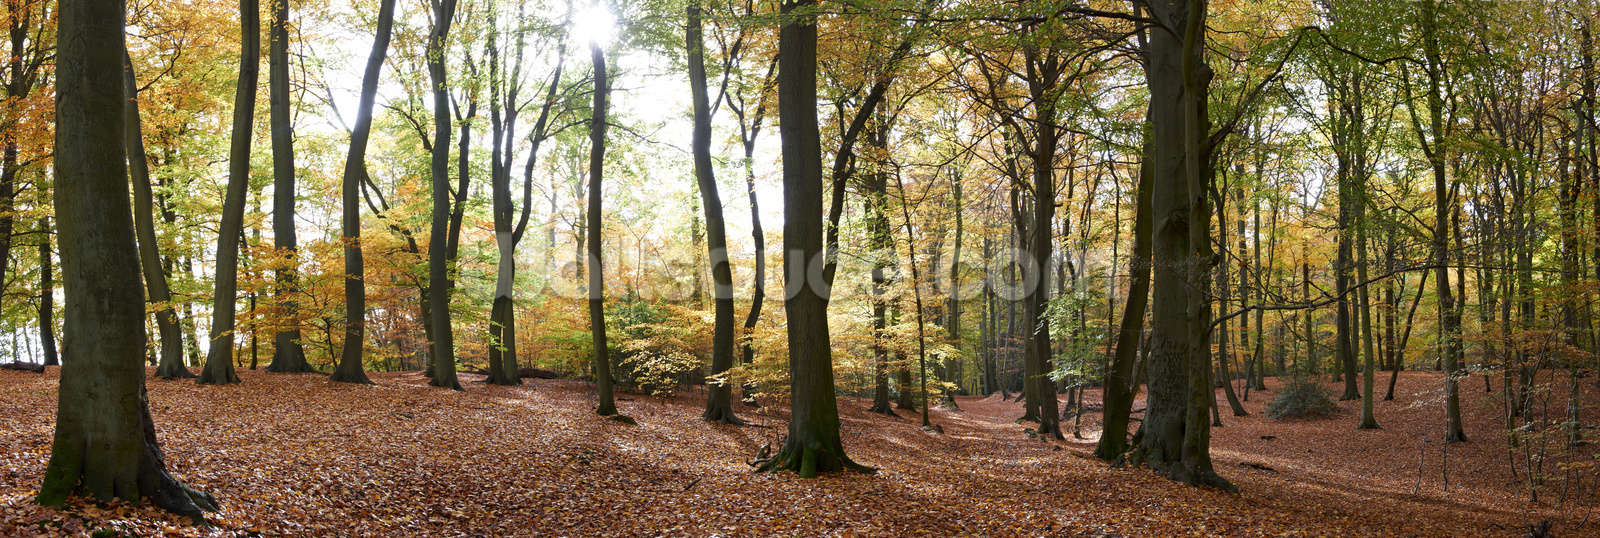 Autumn forest panoramic wallpaper wall mural wallsauce australia autumn forest panoramic wall mural photo wallpaper amipublicfo Images